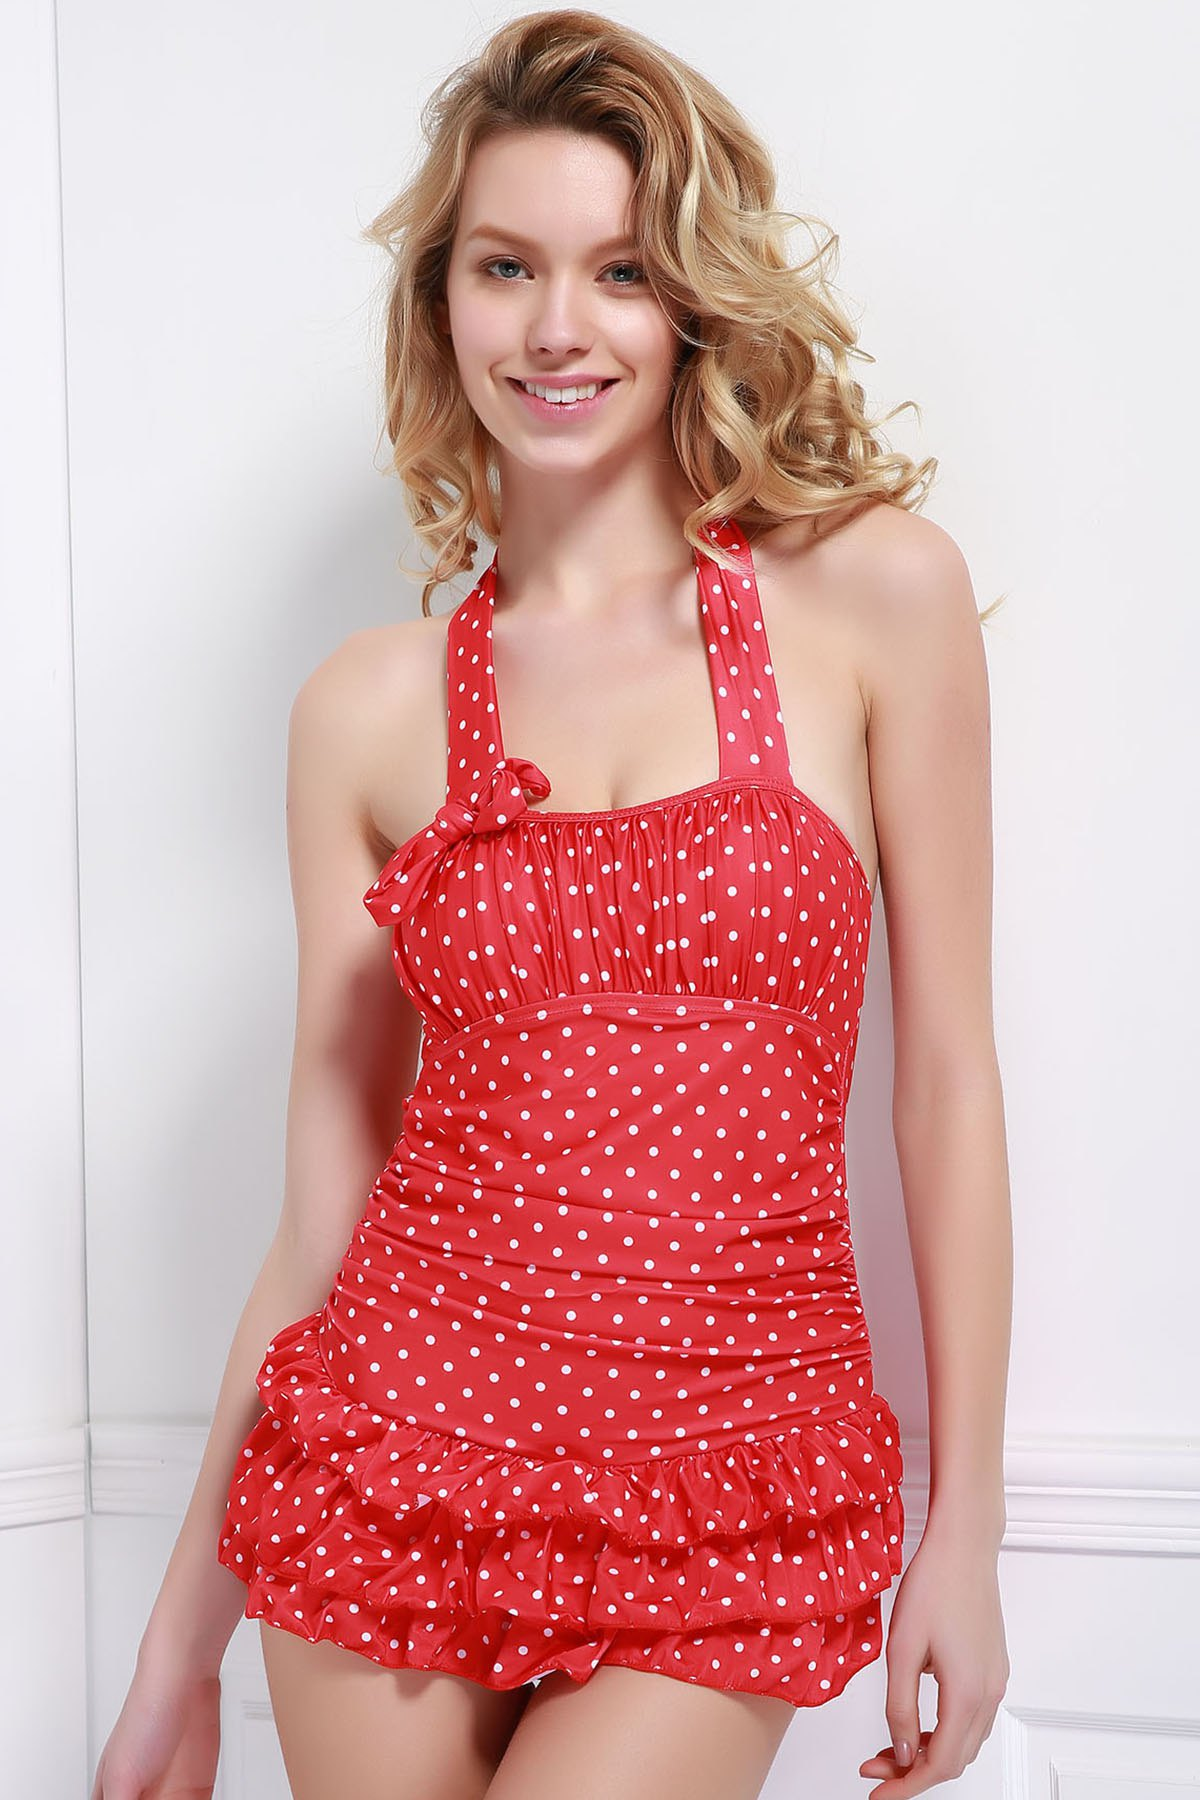 Women's Charming Multi-Layered Hollow Out Polka Dot Print One Piece Swimsuit